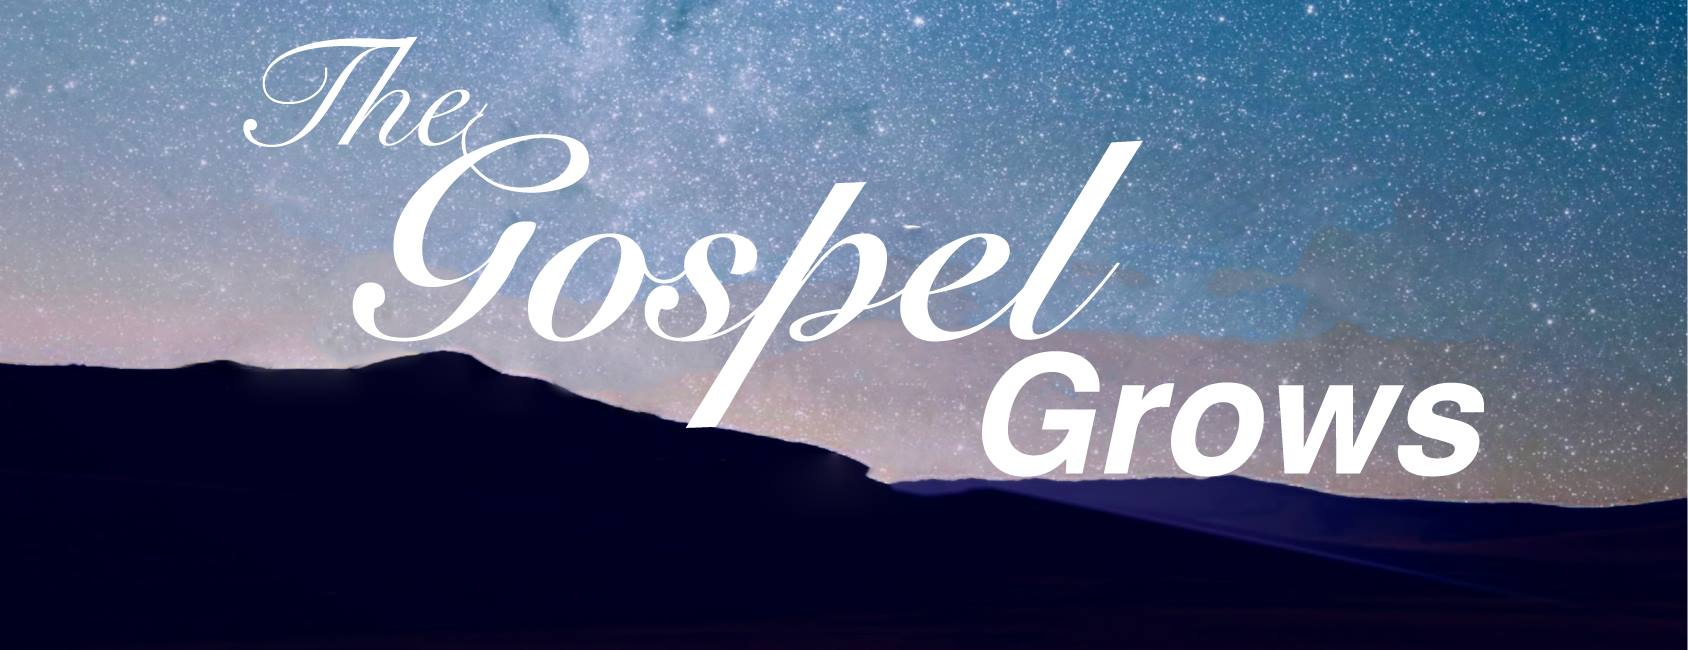 The gospel grows